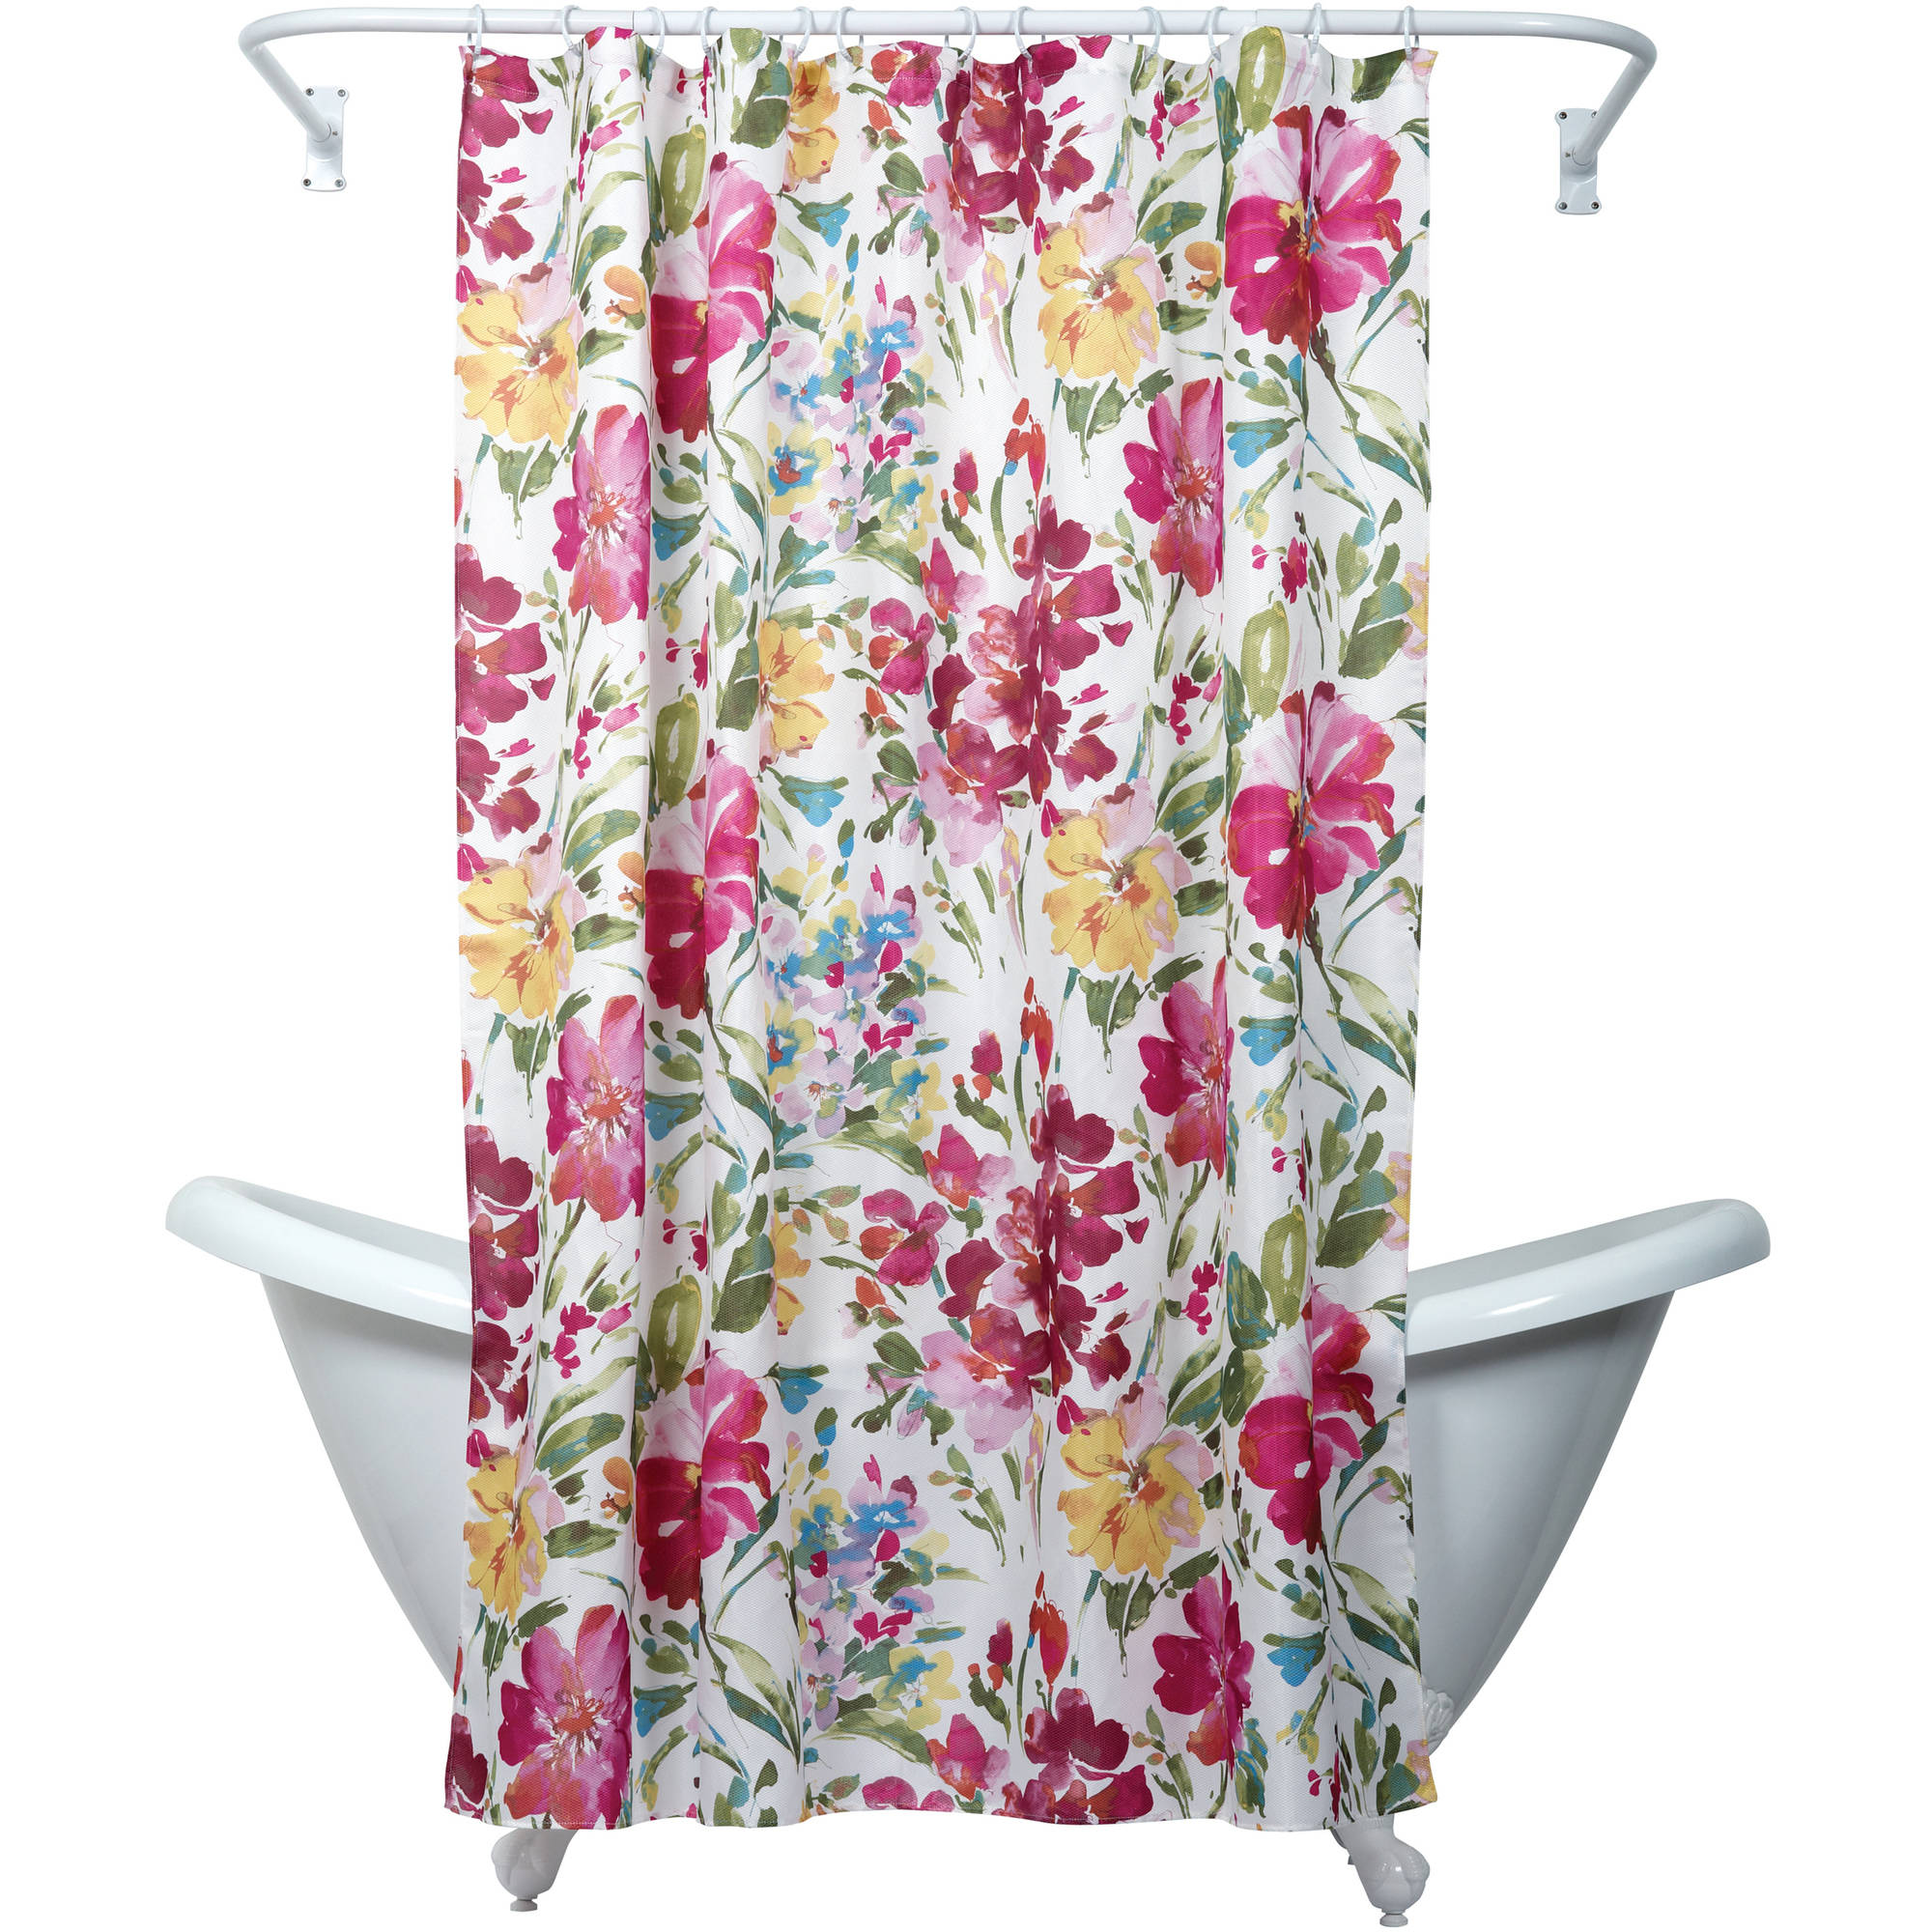 Neutral Shower Curtains | Floral Shower Curtain Target | Floral Shower Curtain